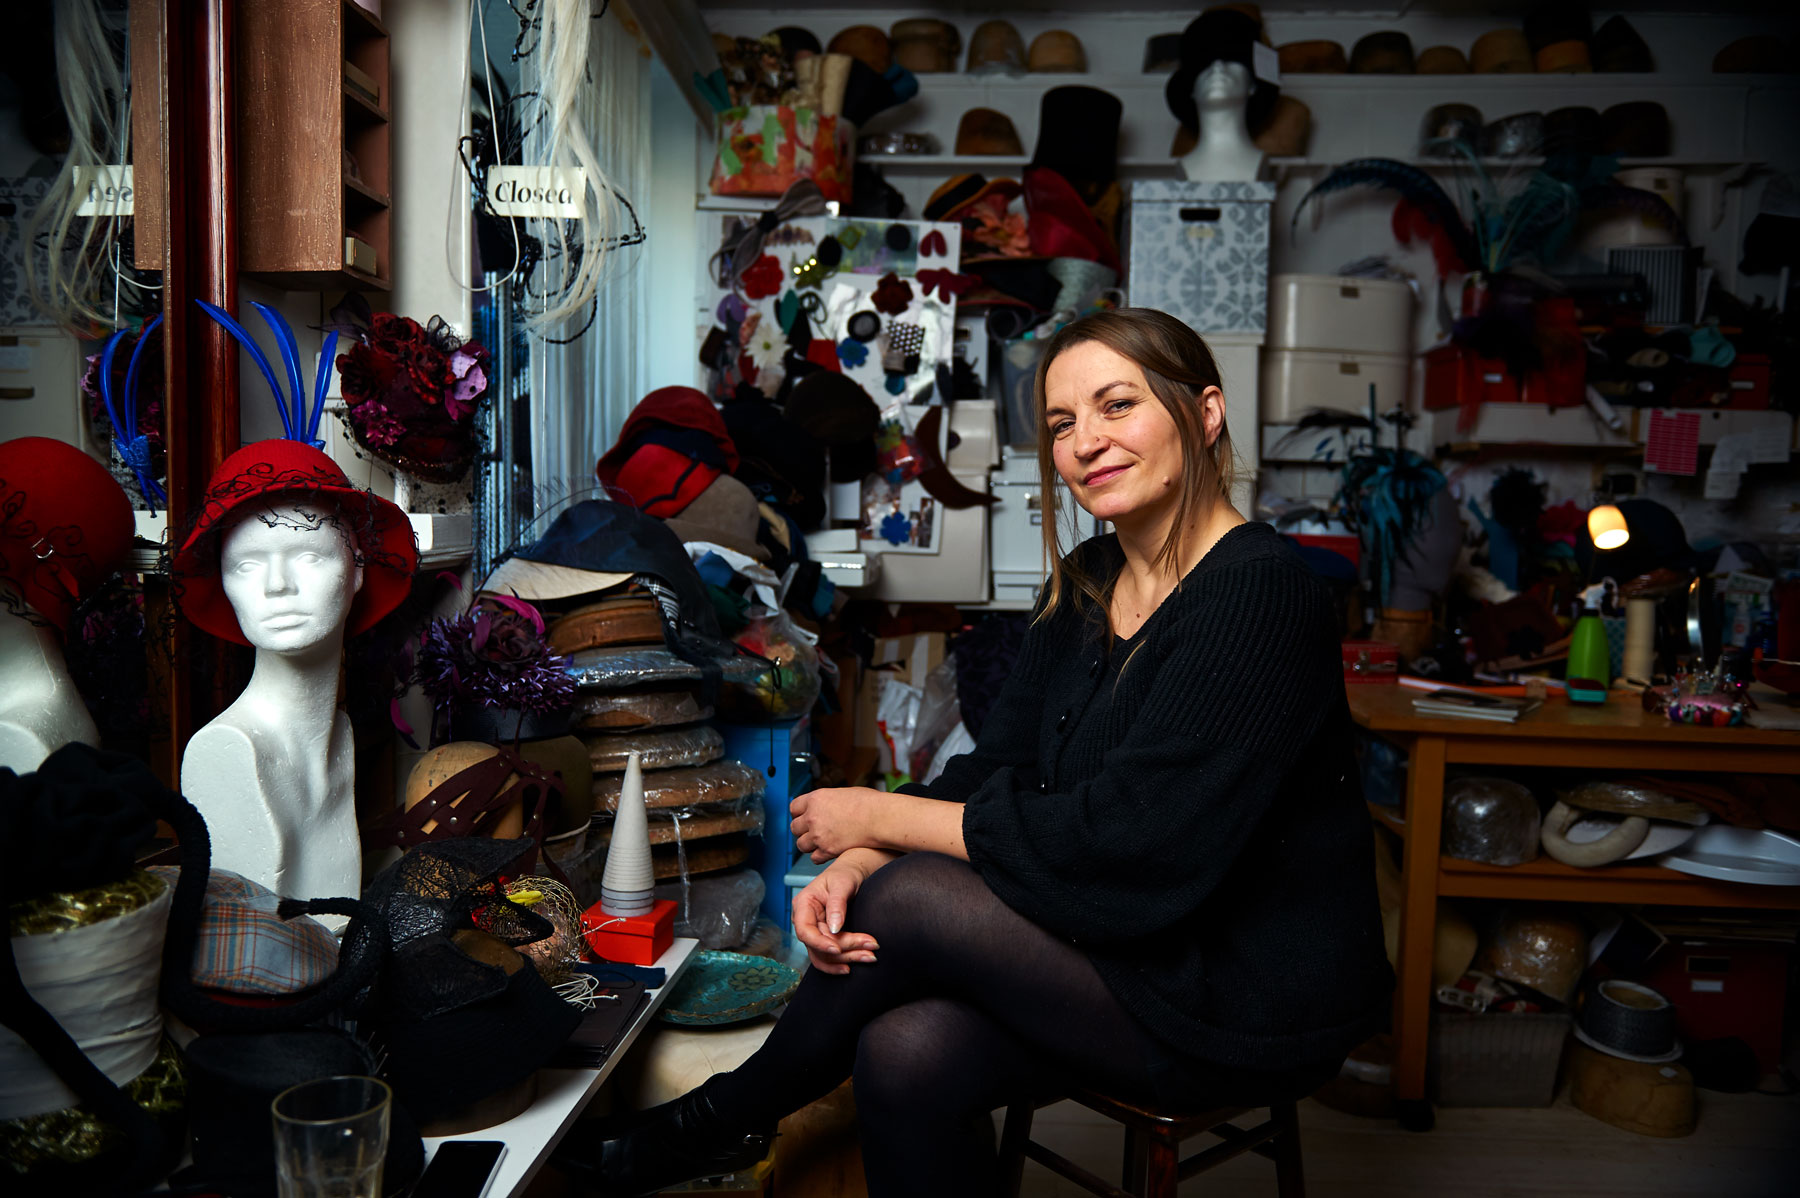 Portrait of Mona Strand a hat maker in Oslo, from the book Mitt Oslo. By Håvard Schei